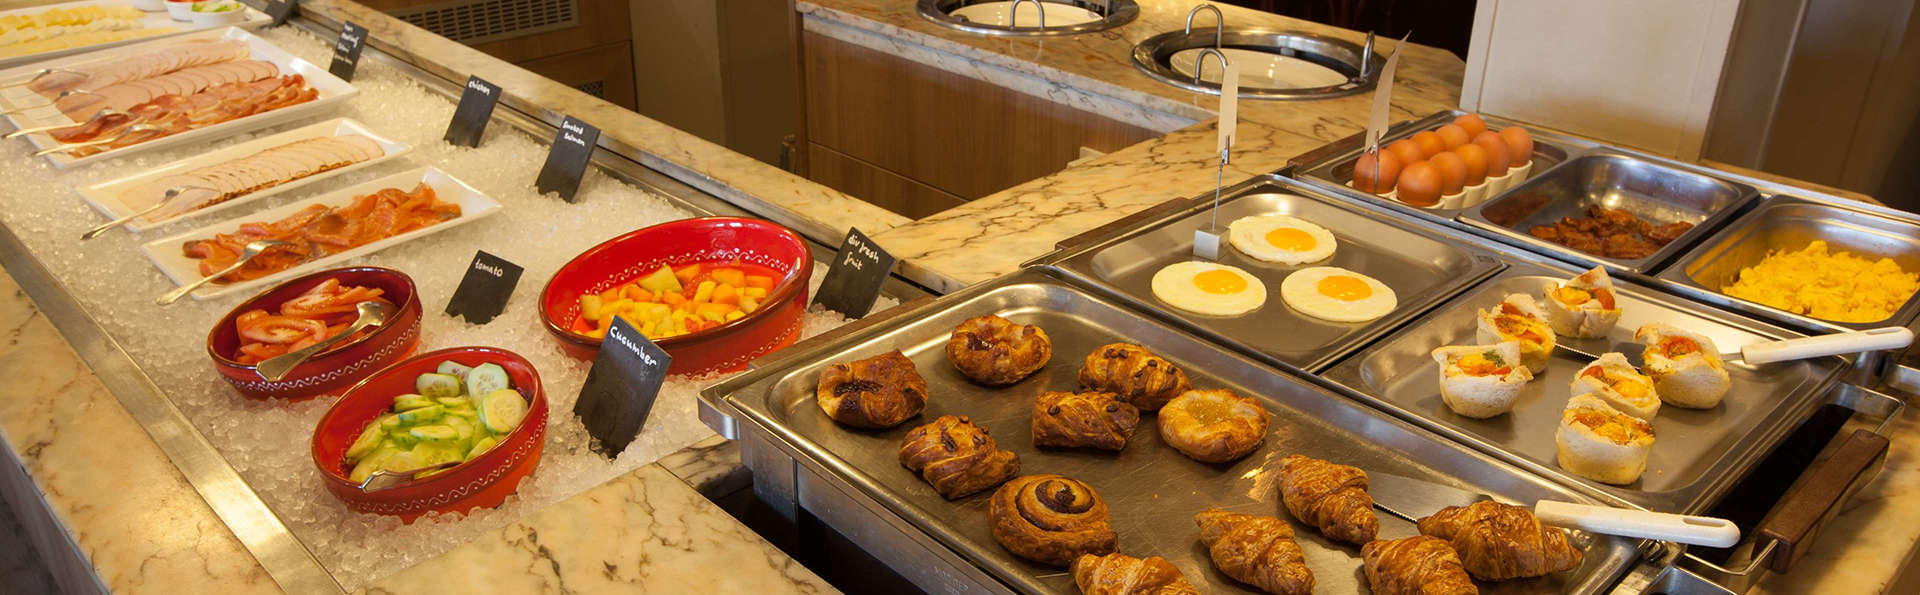 Best Western City Hotel Goderie - EDIT_BREAKFAST.jpg